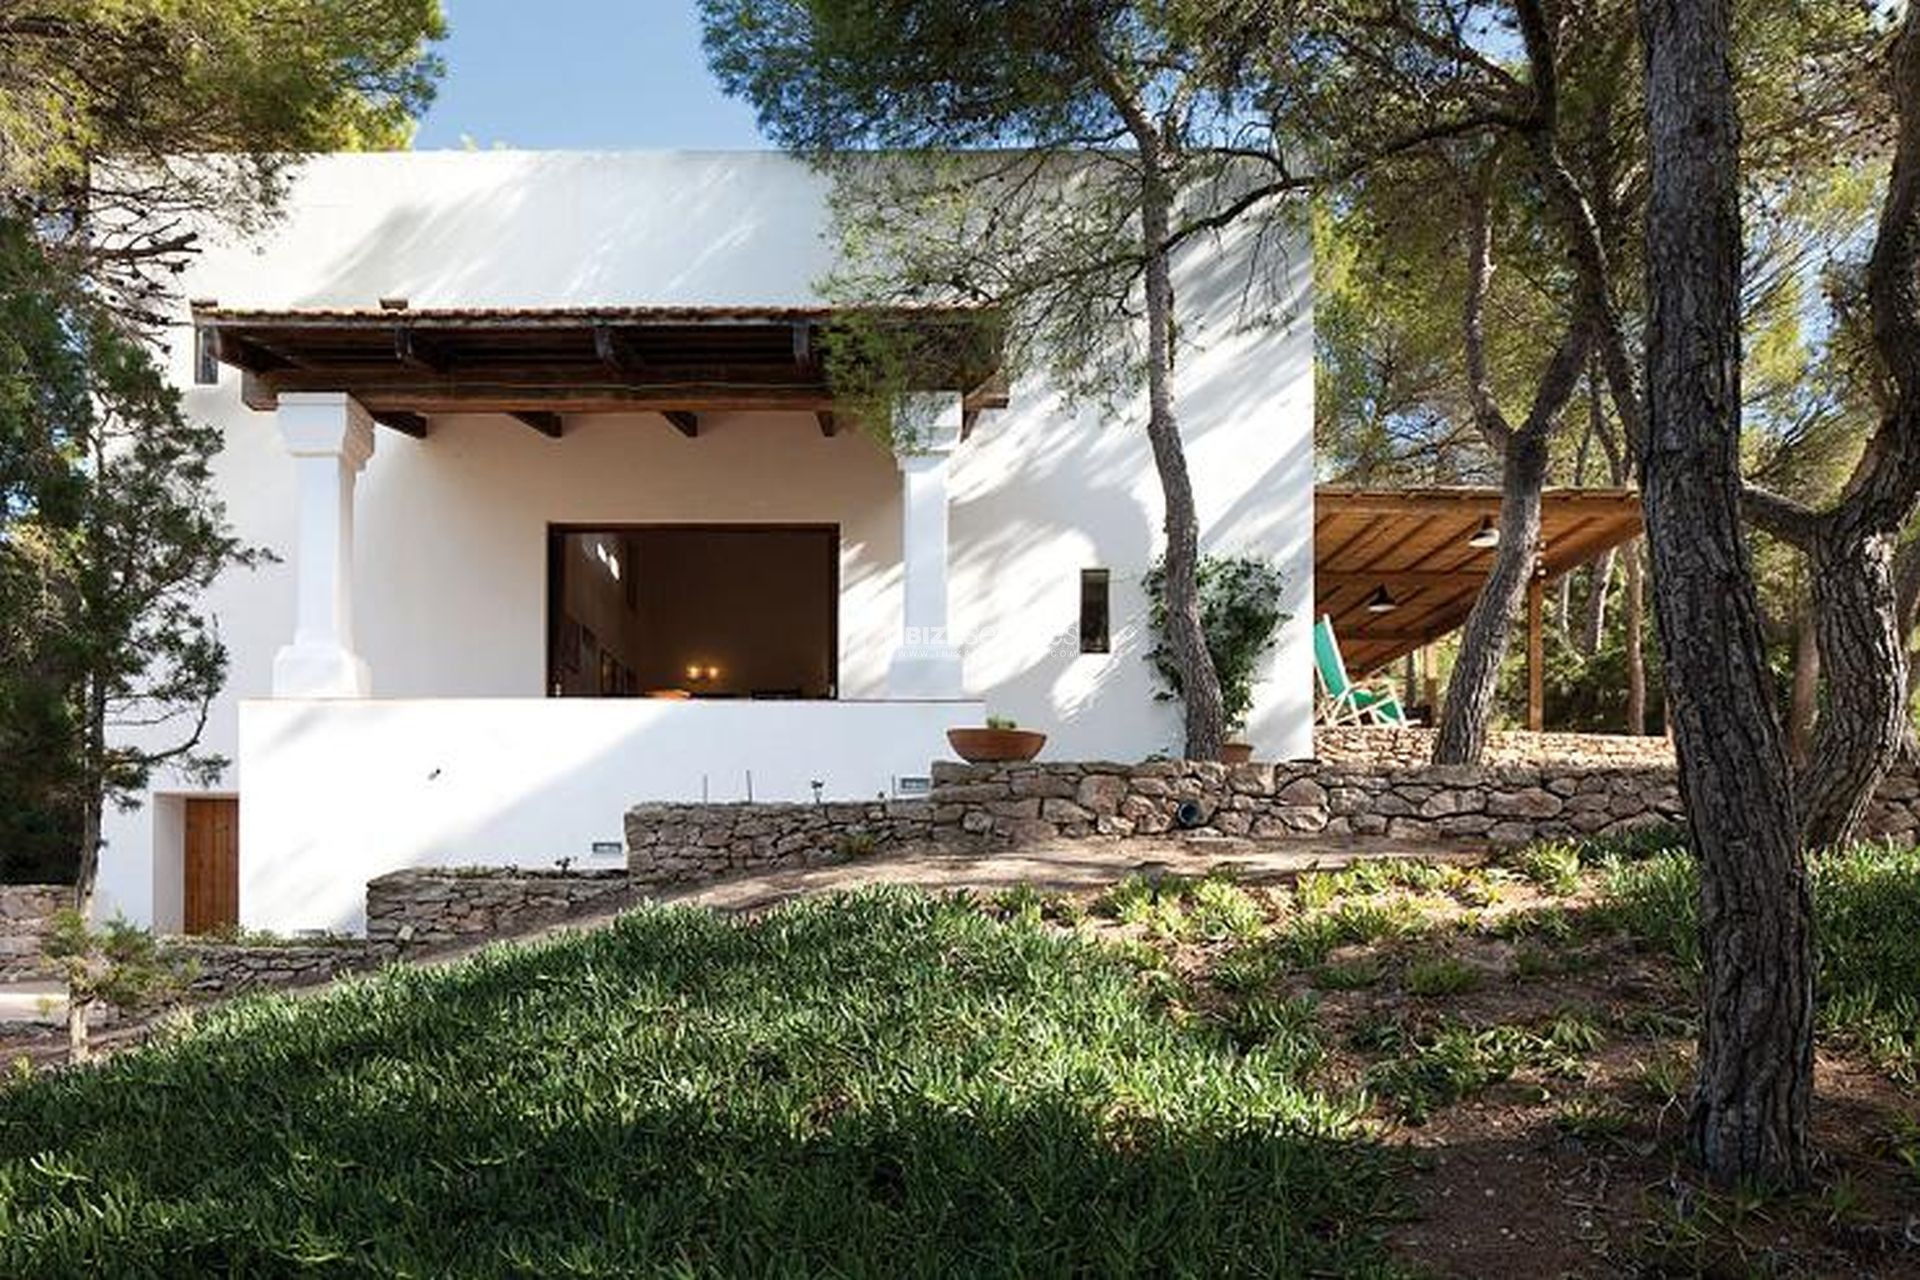 4 bedroom Villa for rent in Formentera perspectiva 3